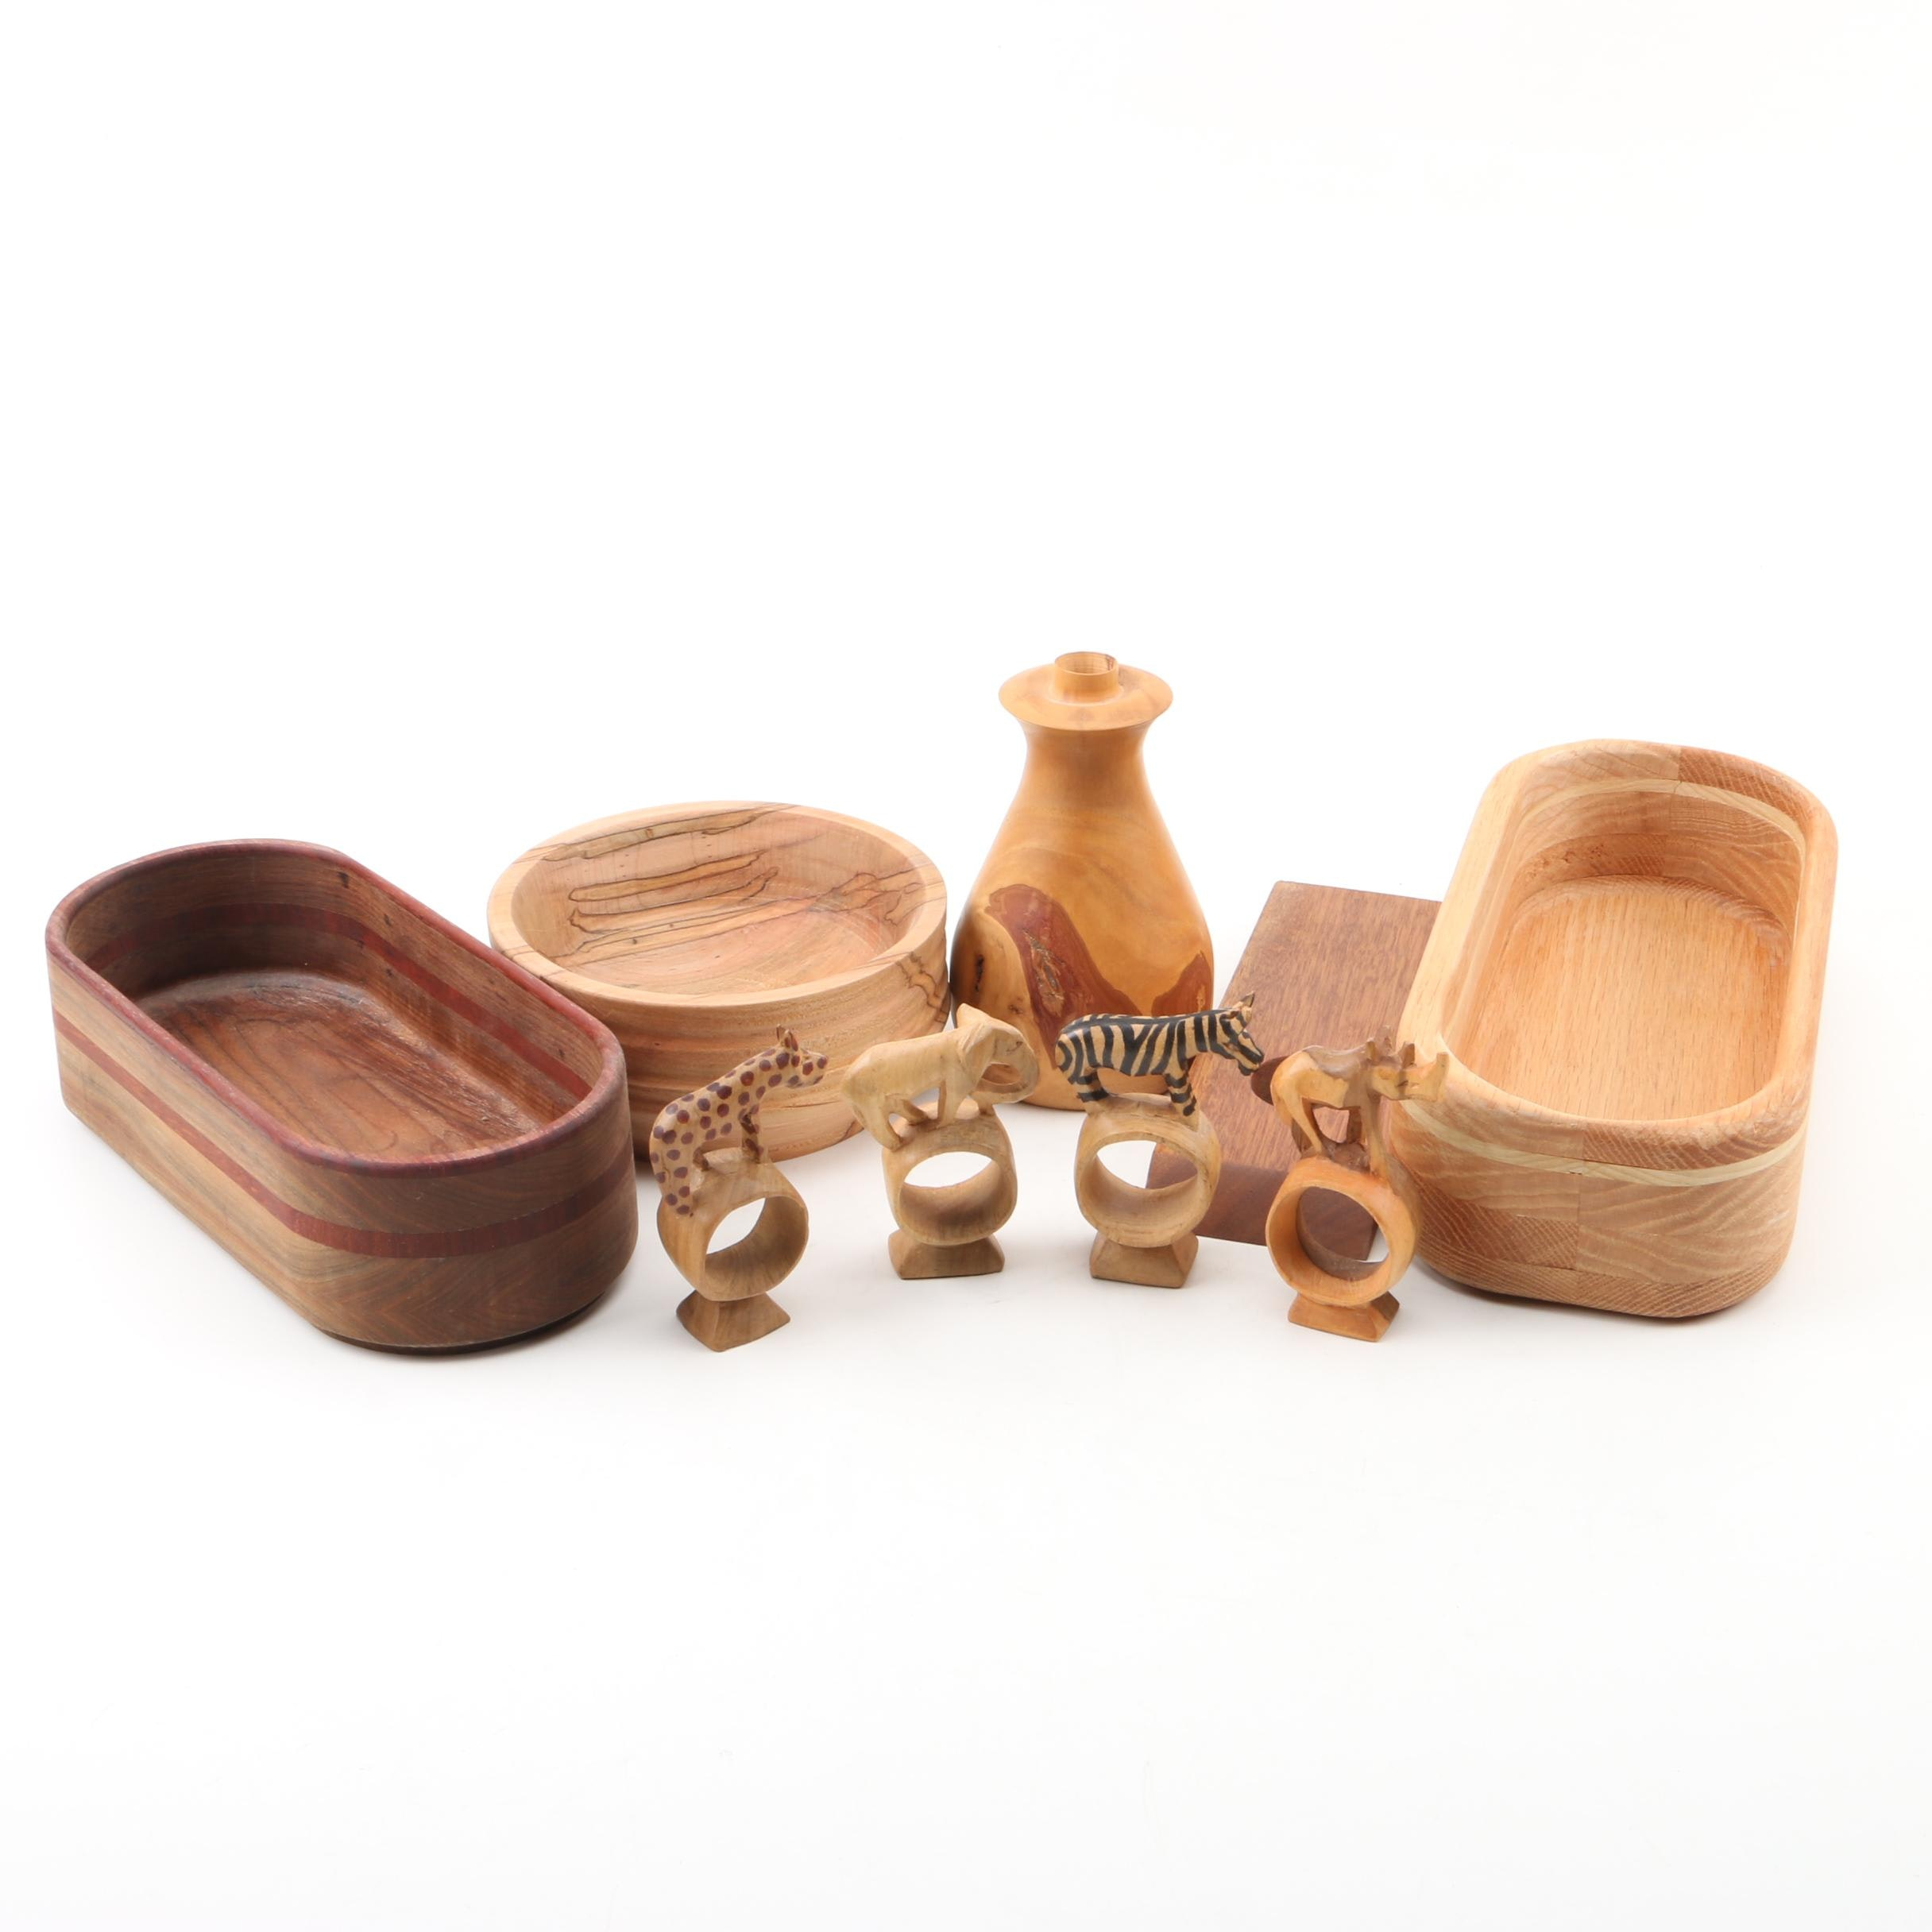 Handcrafted Wood Planter and Bowl by Steve Winkle and Table Accessories